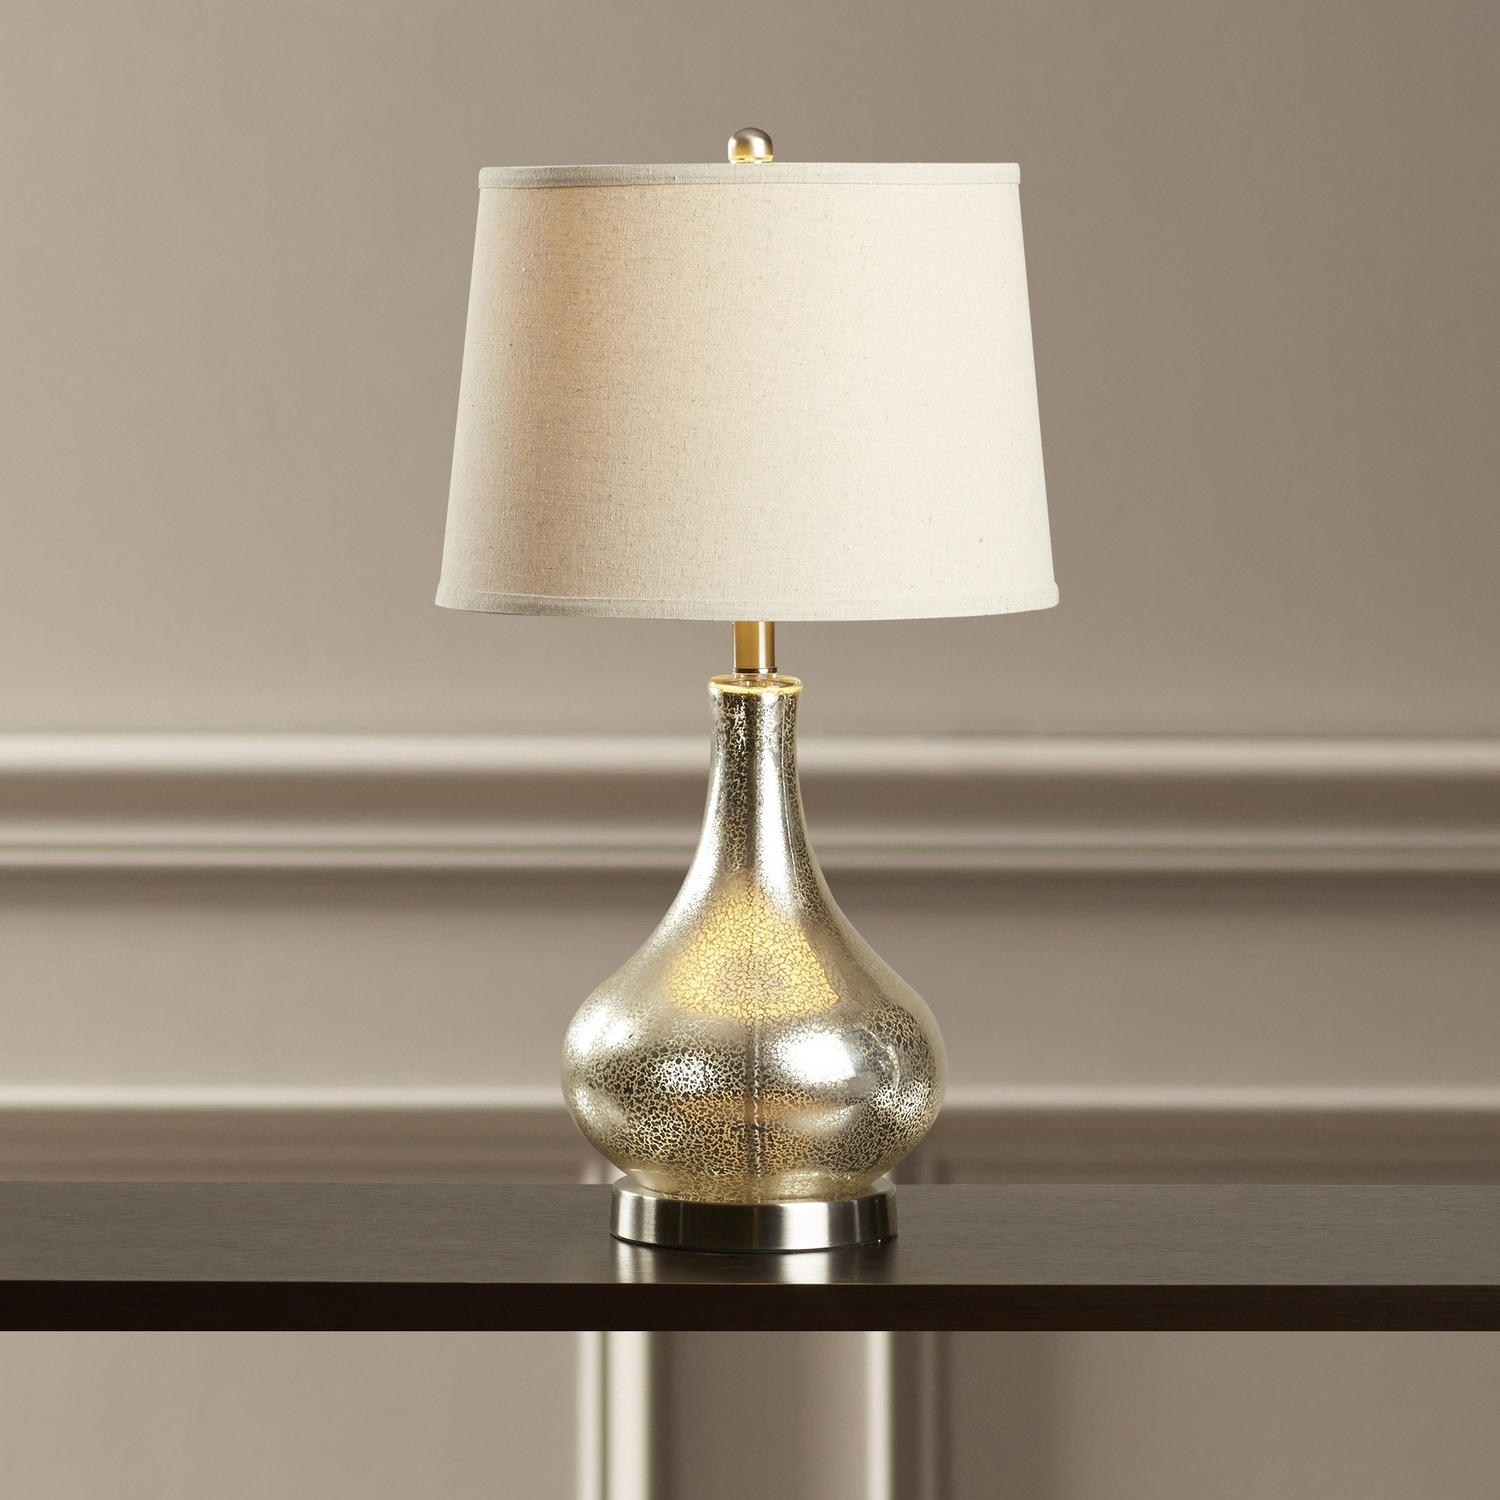 62 Most Class Cheap Table Lamps Glass Bedroom Small For Living Room Pertaining To Preferred Gold Living Room Table Lamps (View 3 of 20)